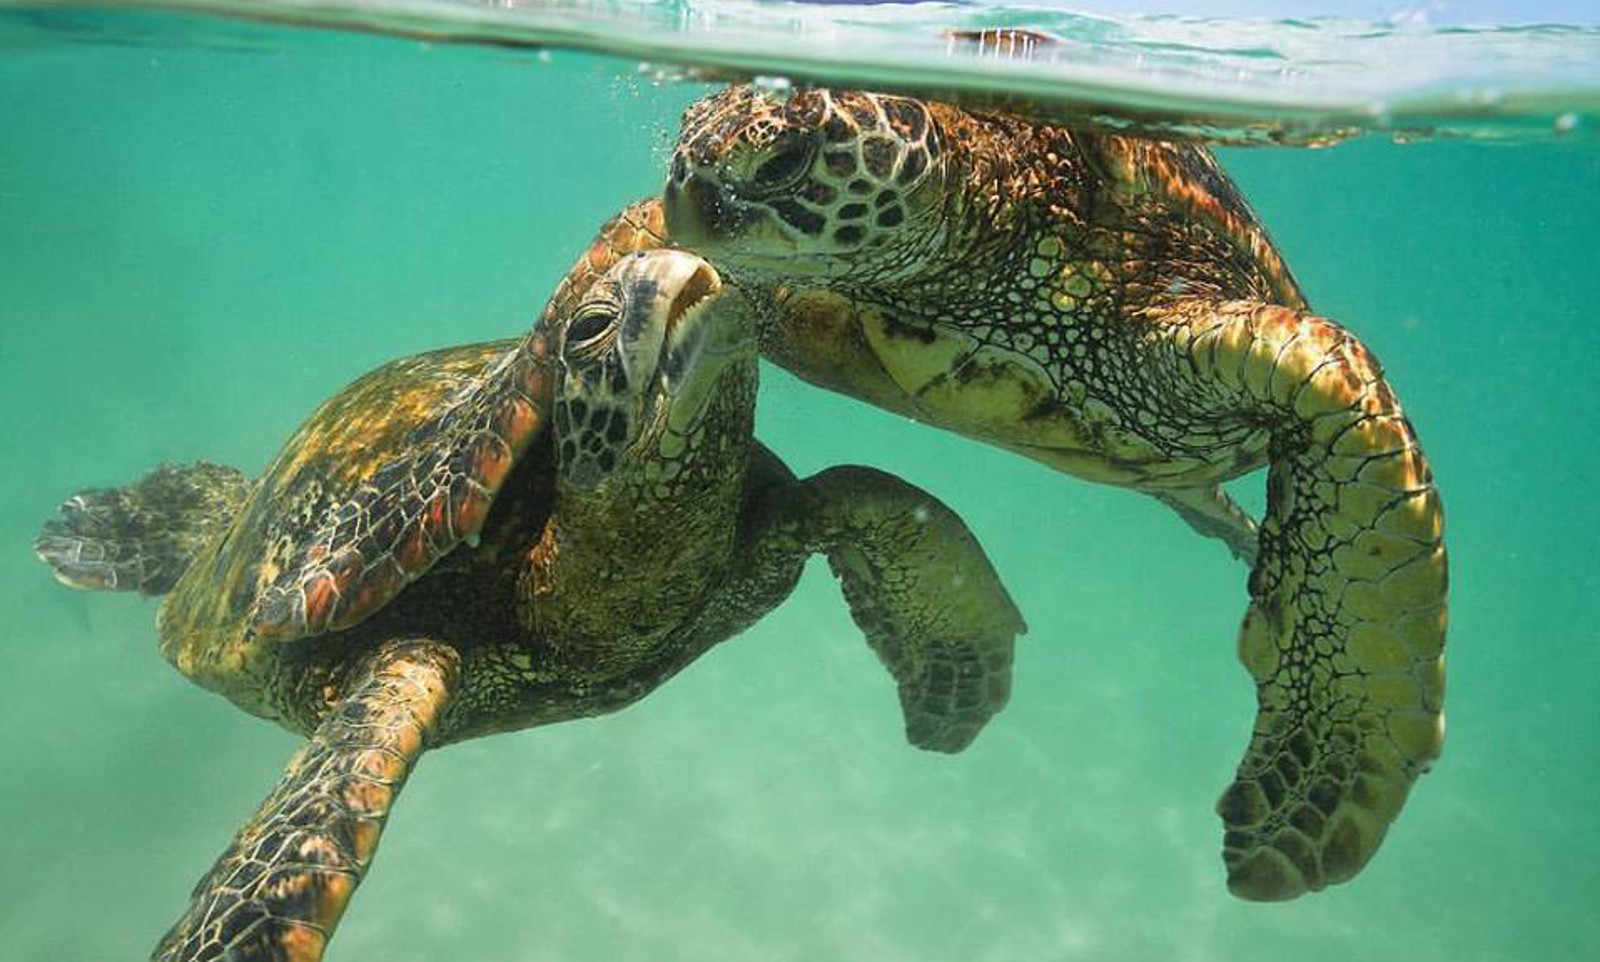 beautiful photo of affectionate turtles reminds us who really